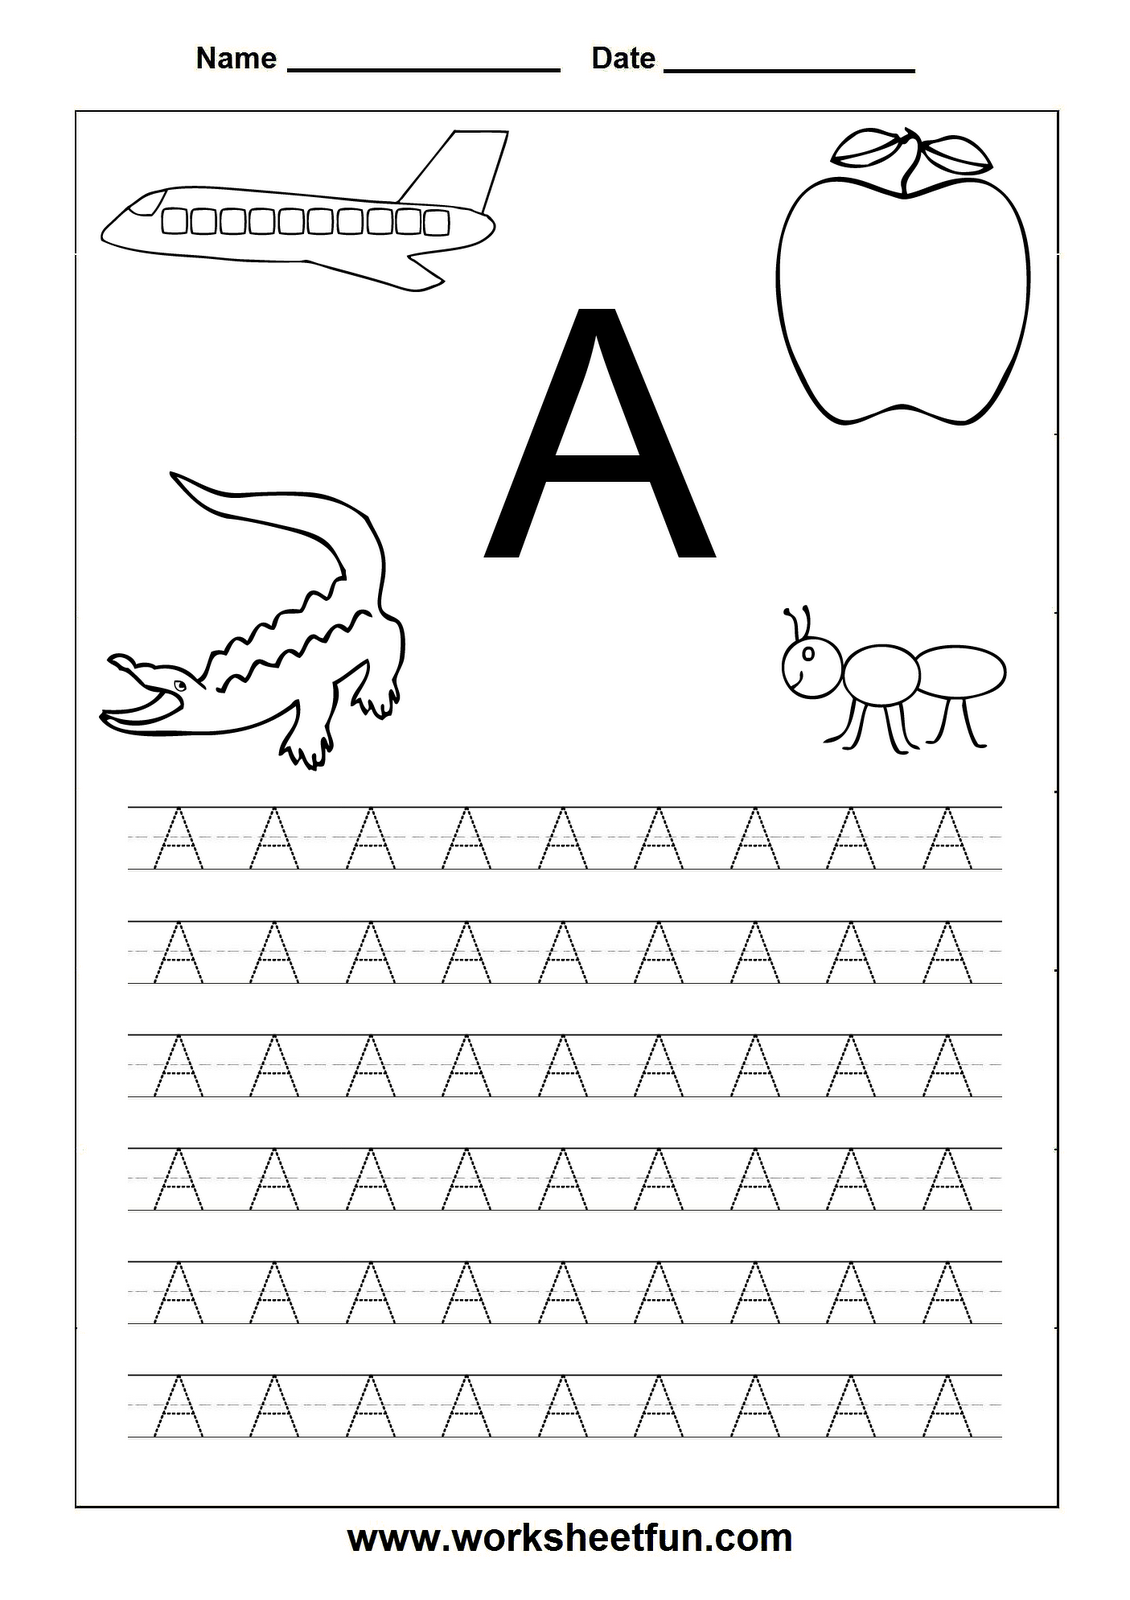 Worksheets Alphabet Learning Worksheets printables free printable preschool worksheets tracing letters letter s for a z